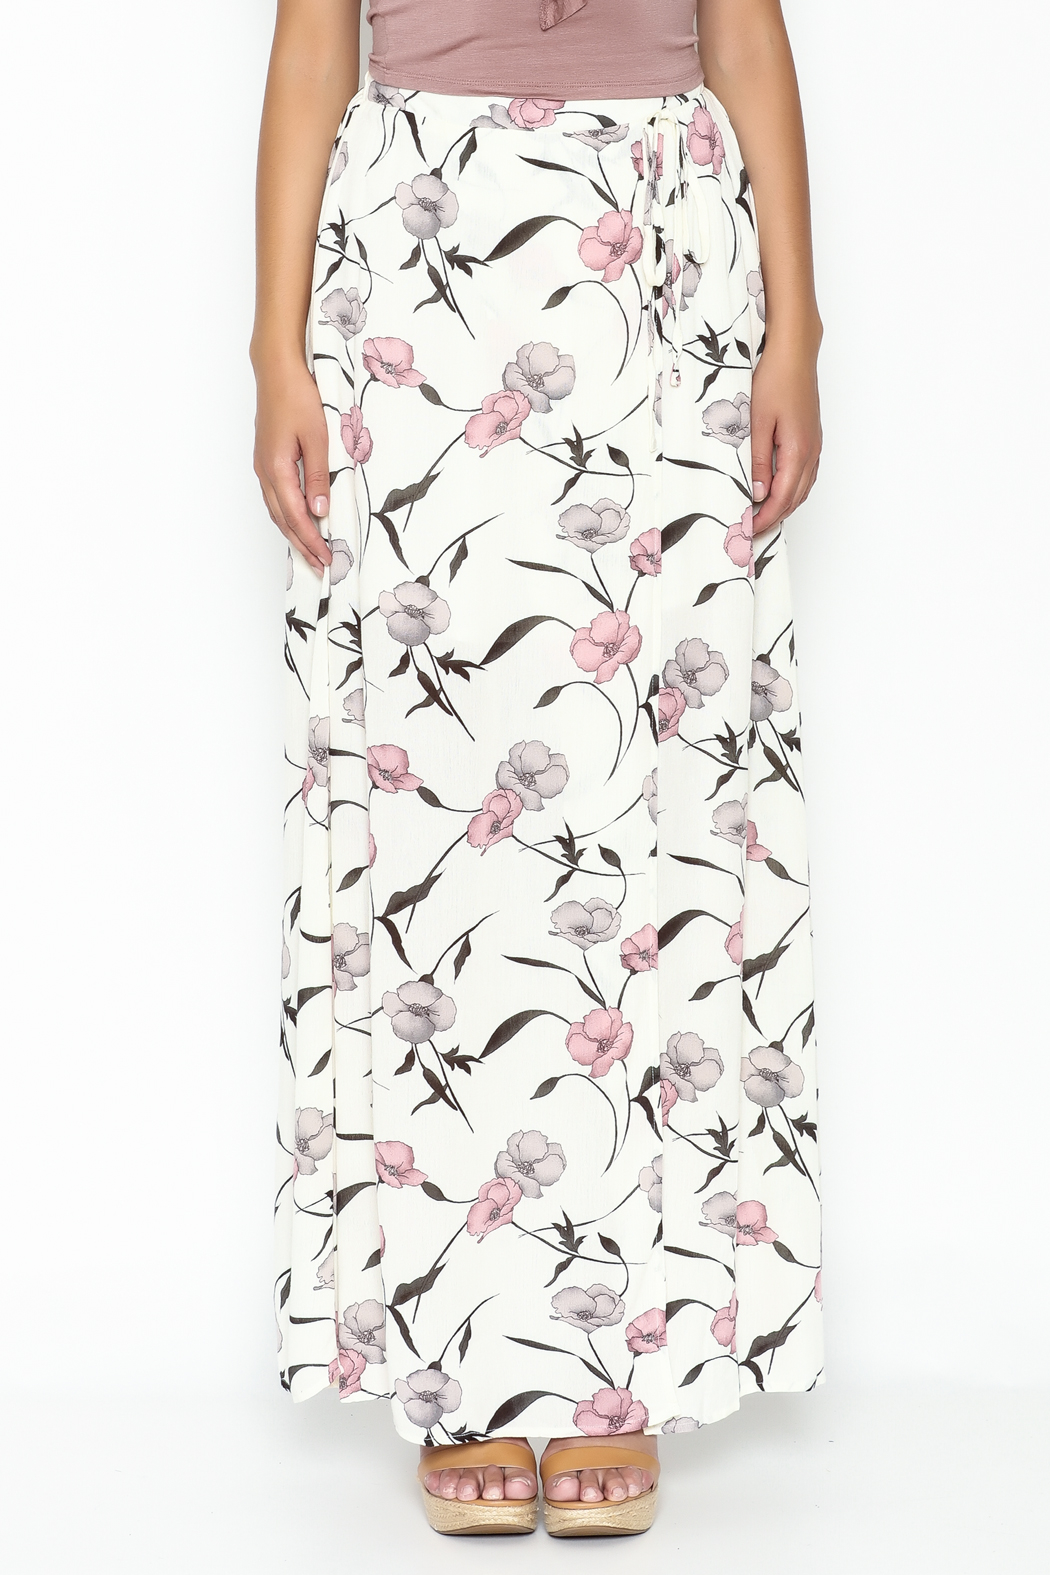 y&i clothing boutique Spaced Floral Maxi Skirt - Front Full Image